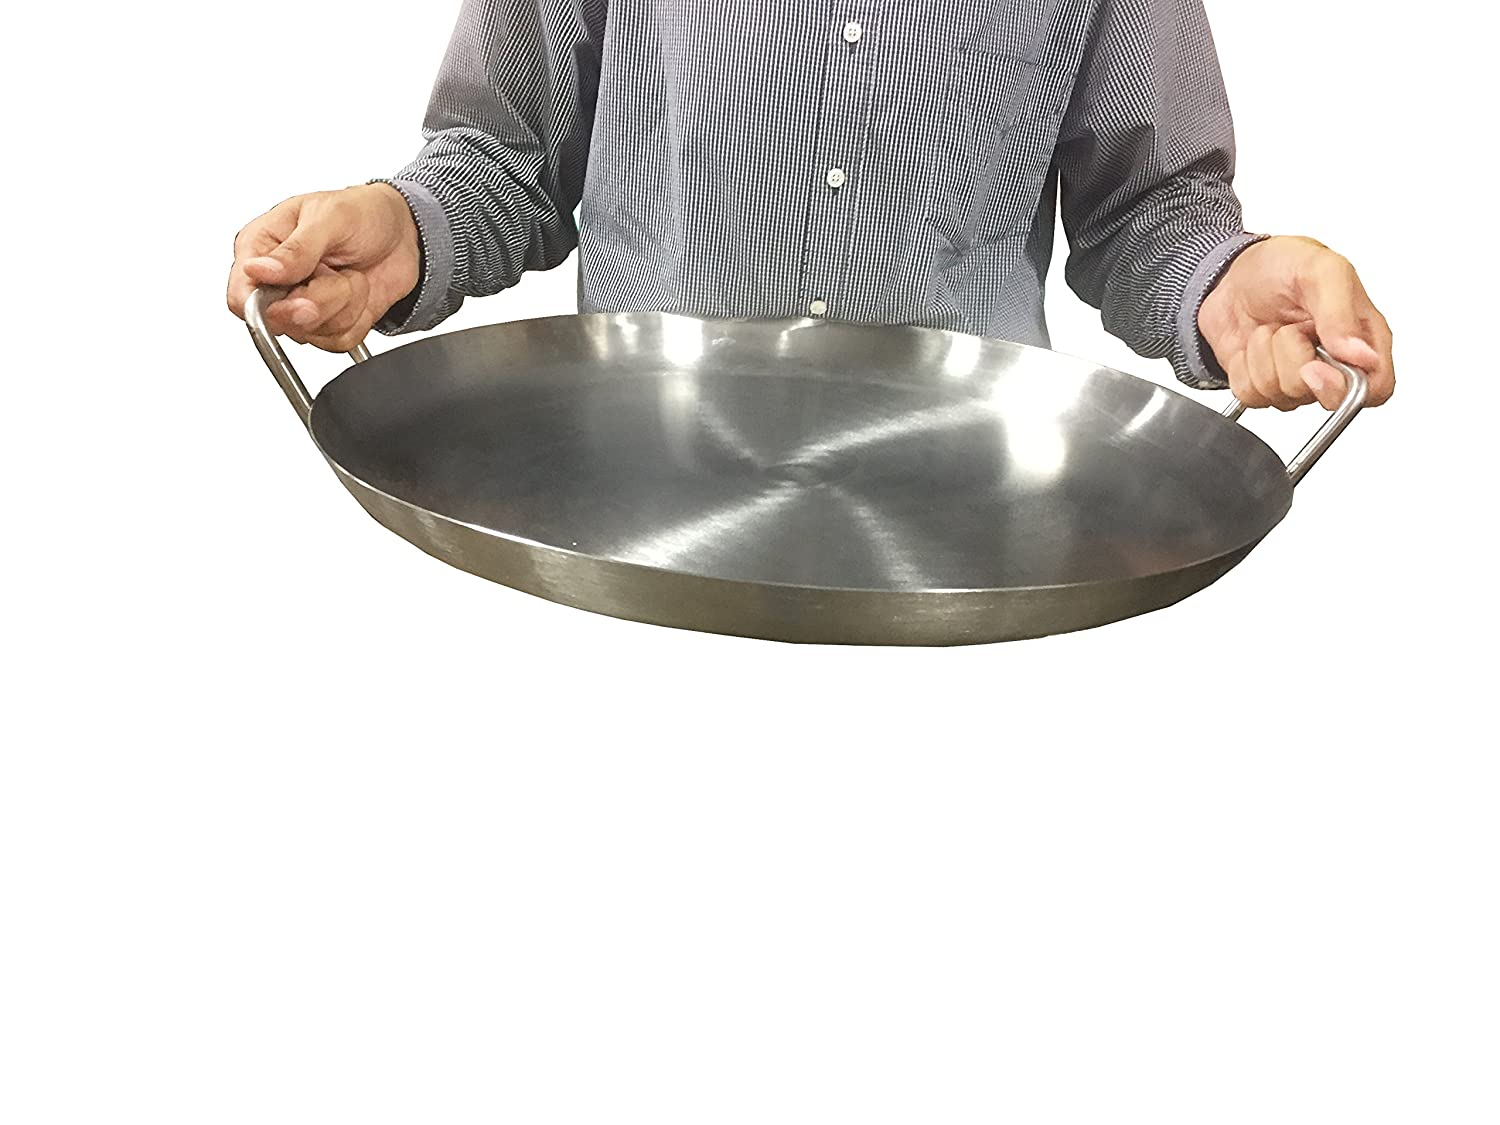 Heavy Duty BBQ Griddle for Portable Gas Stove Stainless Steel Pan Flat Round 16 20 Bioexcel Comal Stir Fry Griddle This one is 20 x 1.5